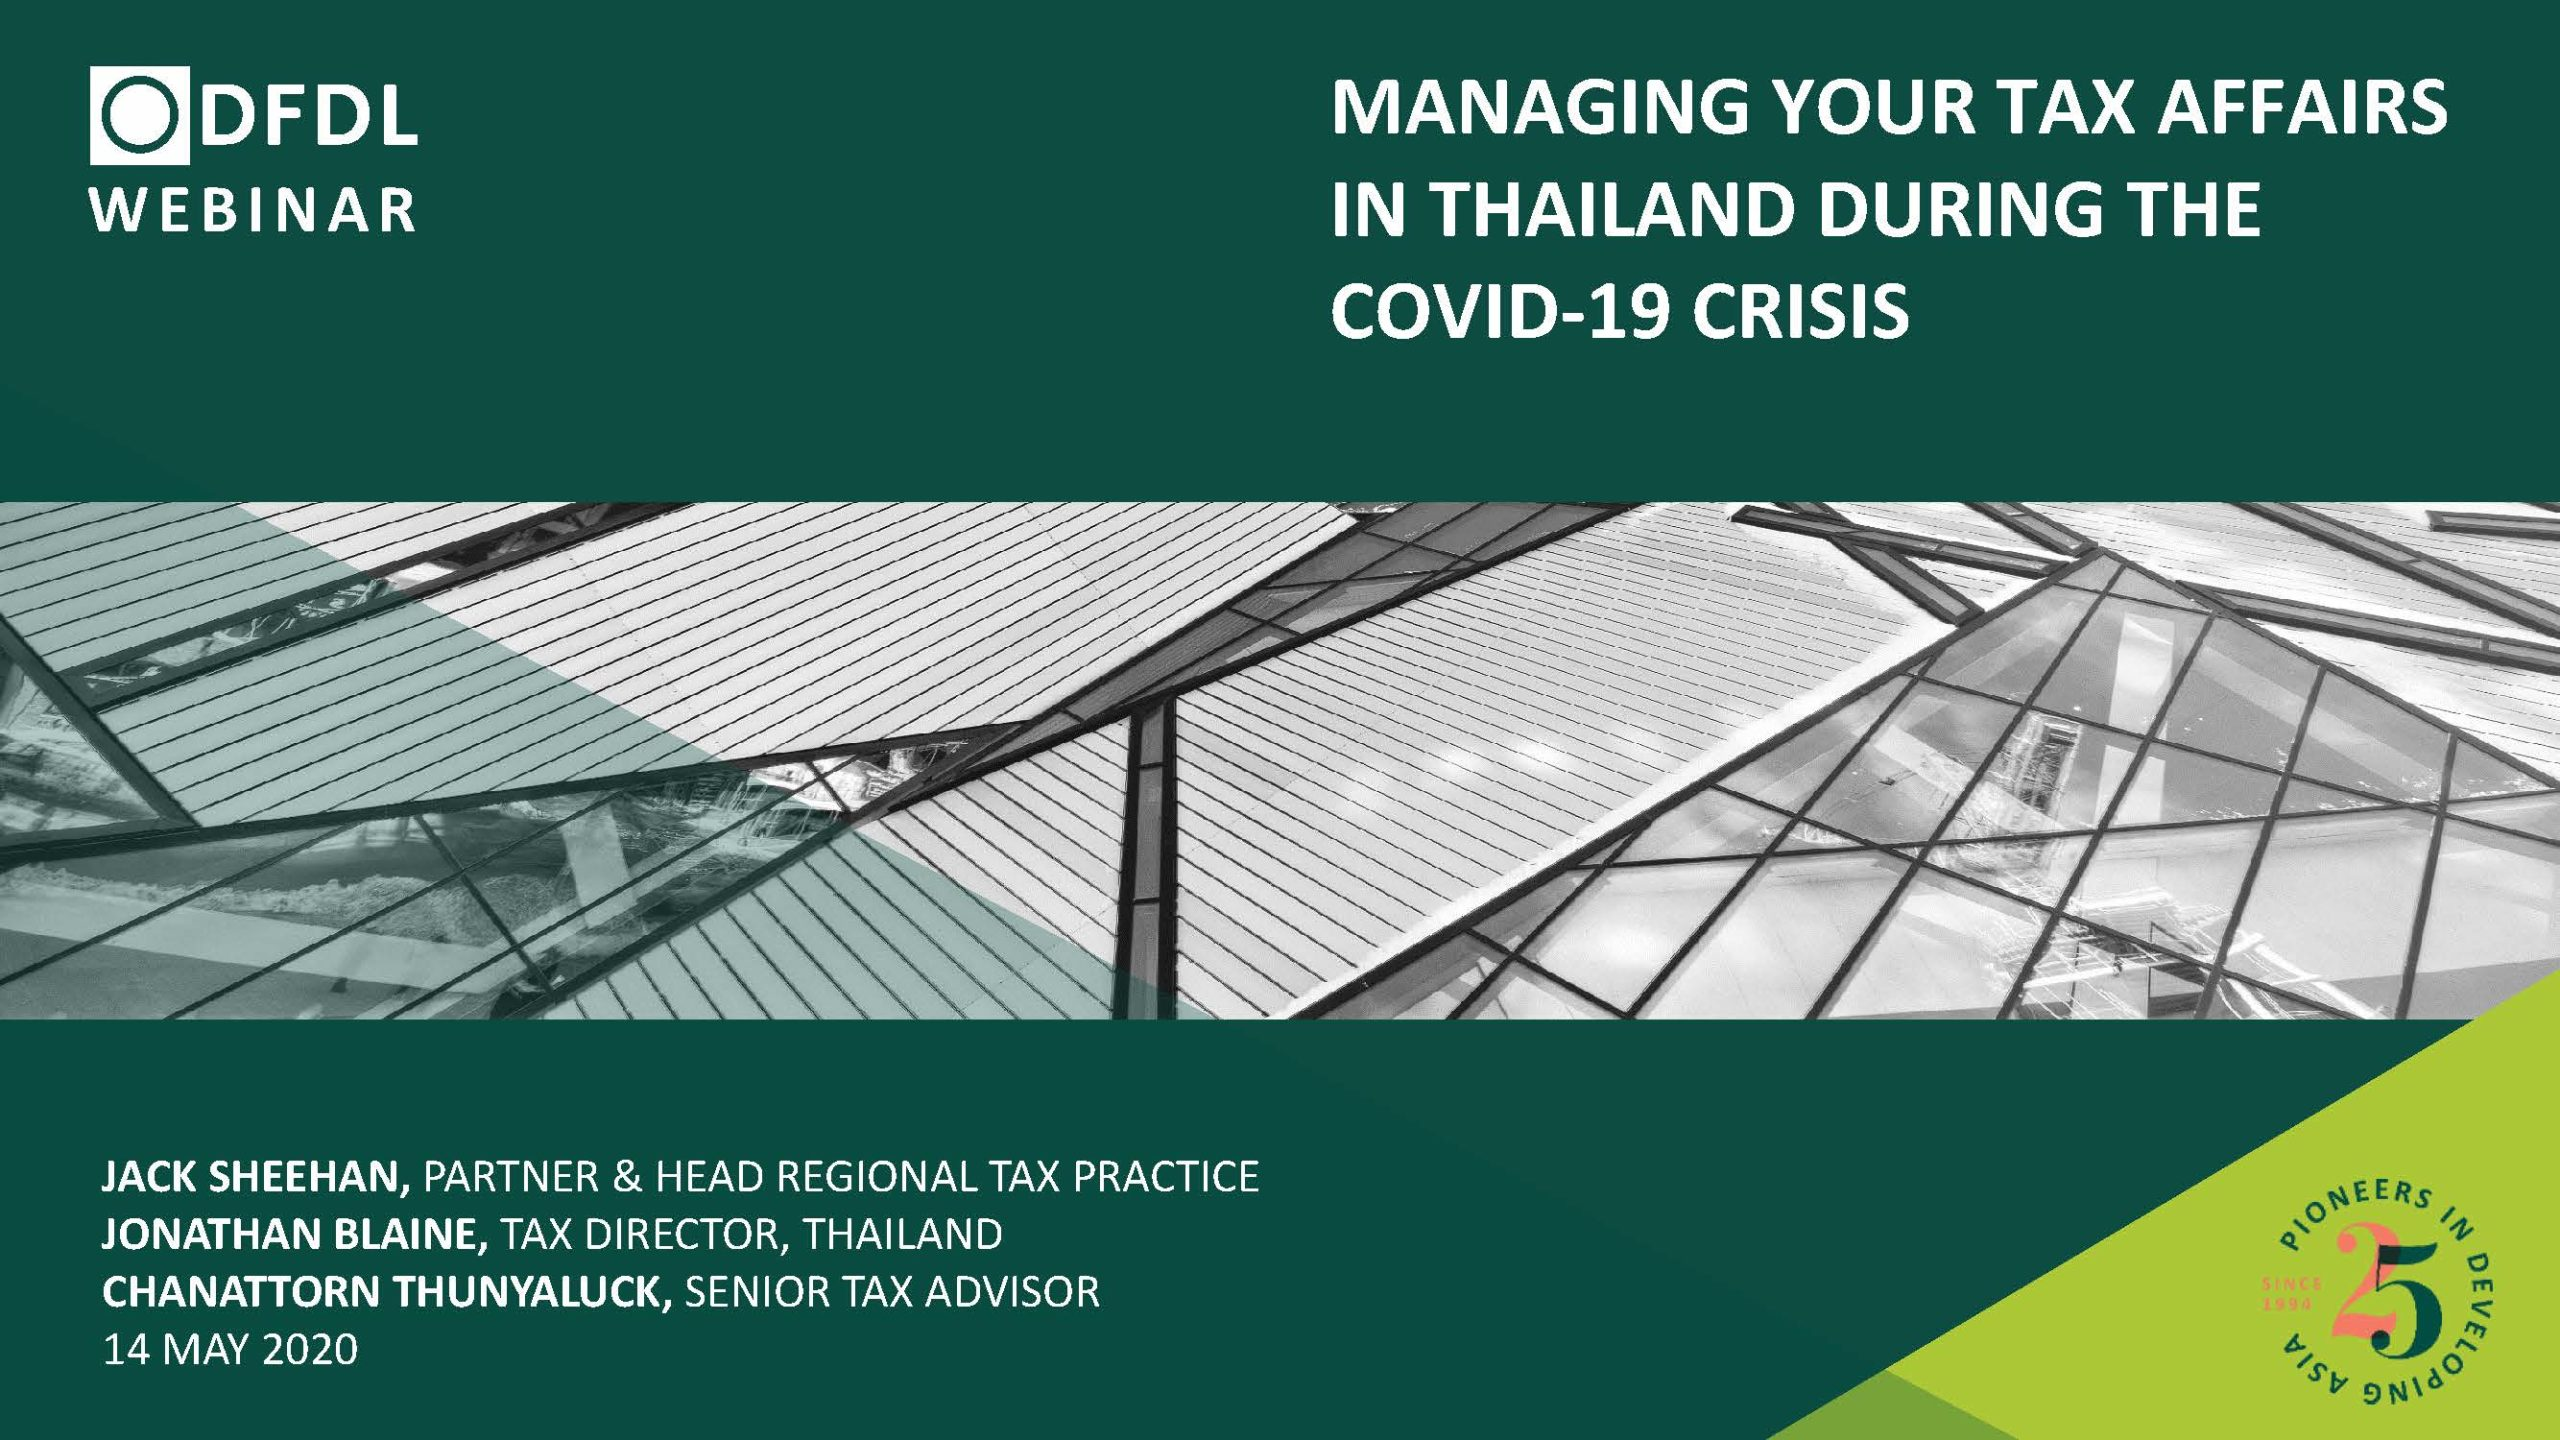 Managing Your Tax Affairs in Thailand During the COVID-19 Crisis